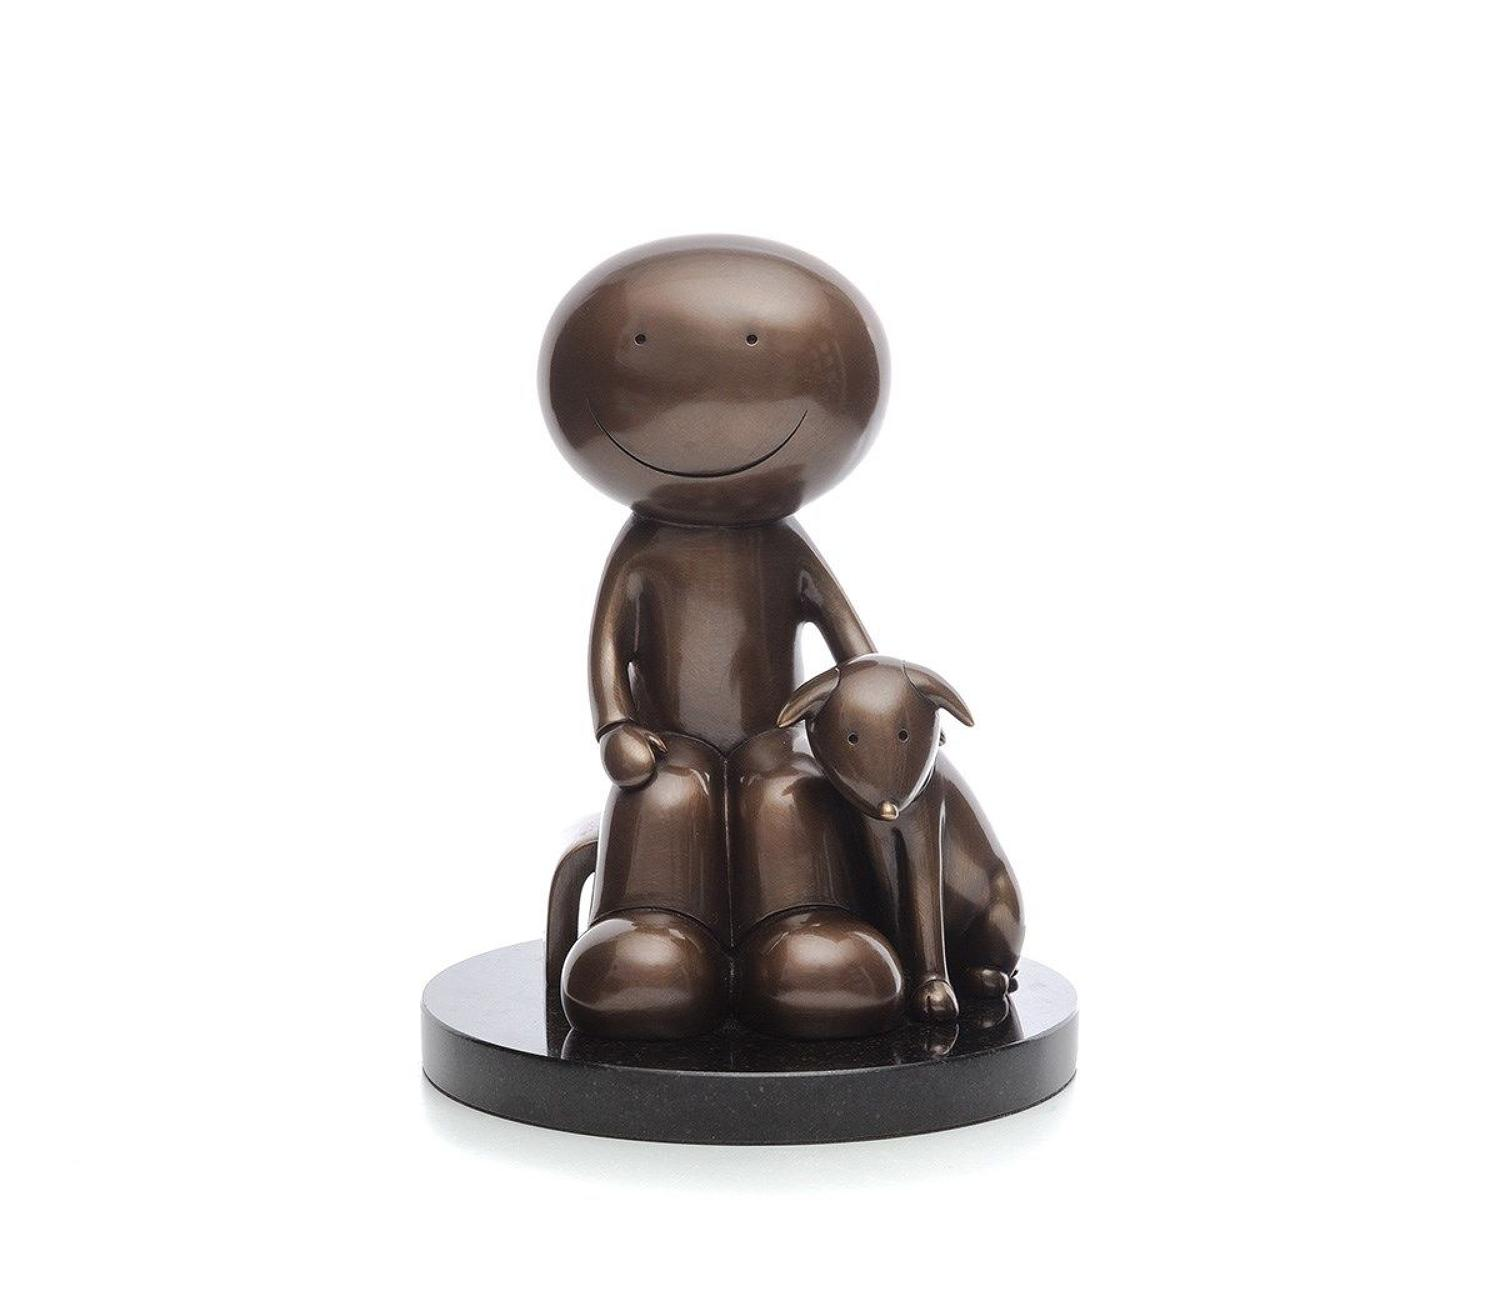 The Great Outdoors Bronze Sculpture By by Doug Hyde